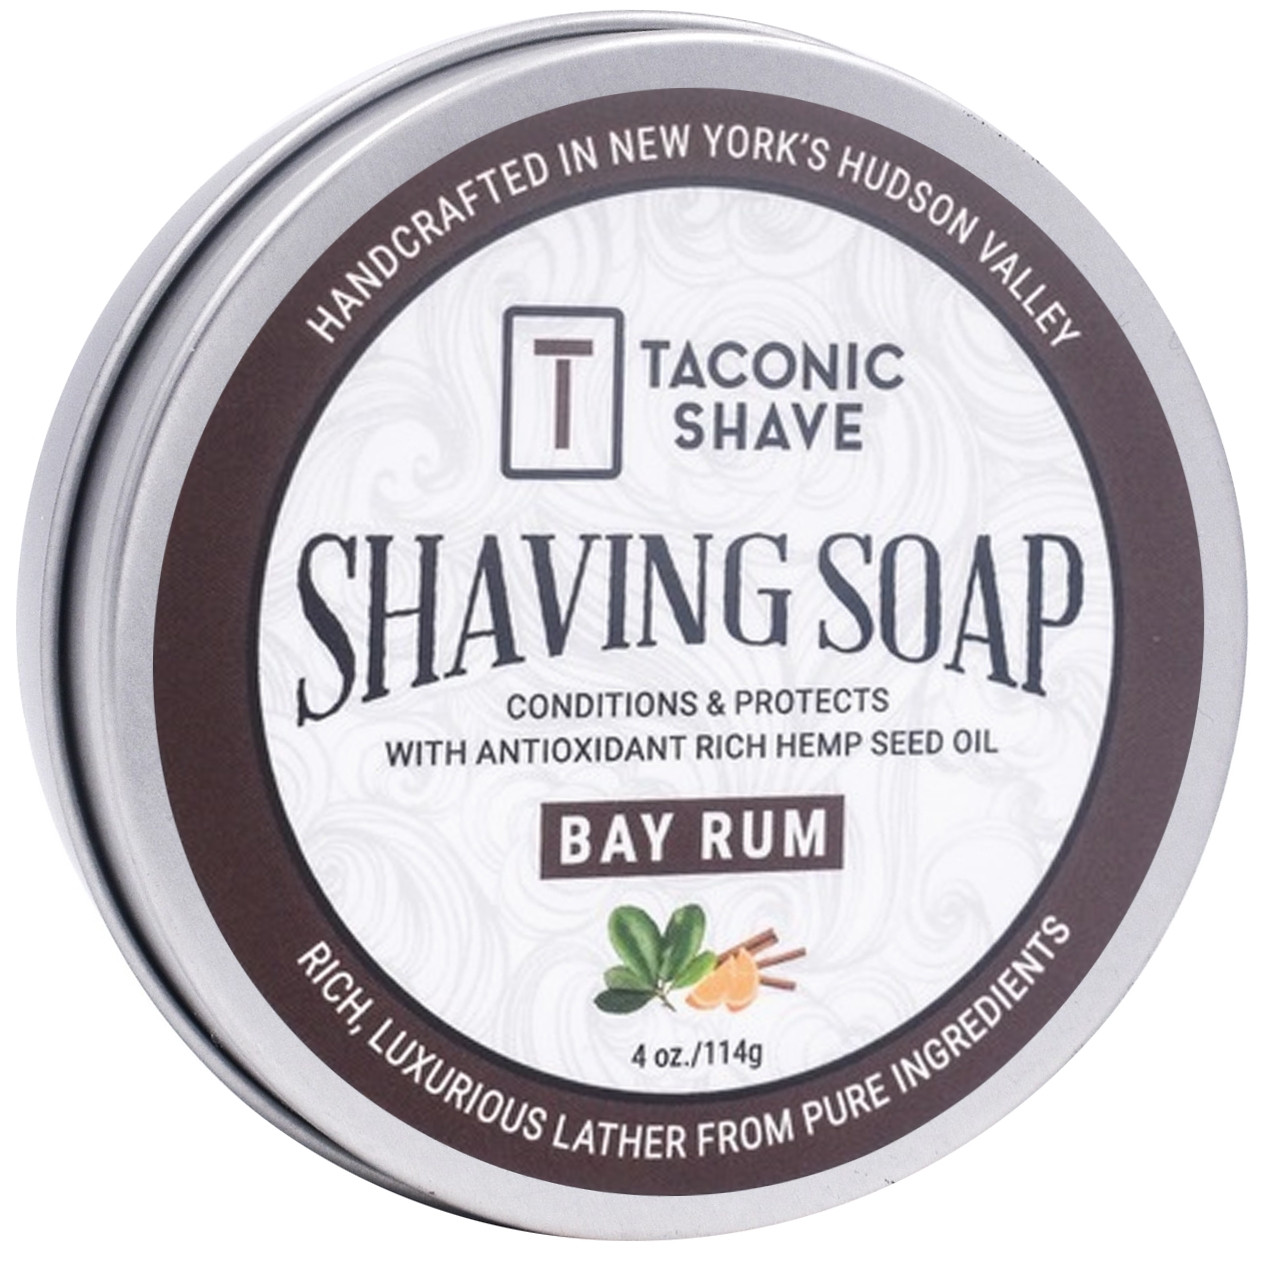 Taconic Shave Soap Bay Rum 4oz